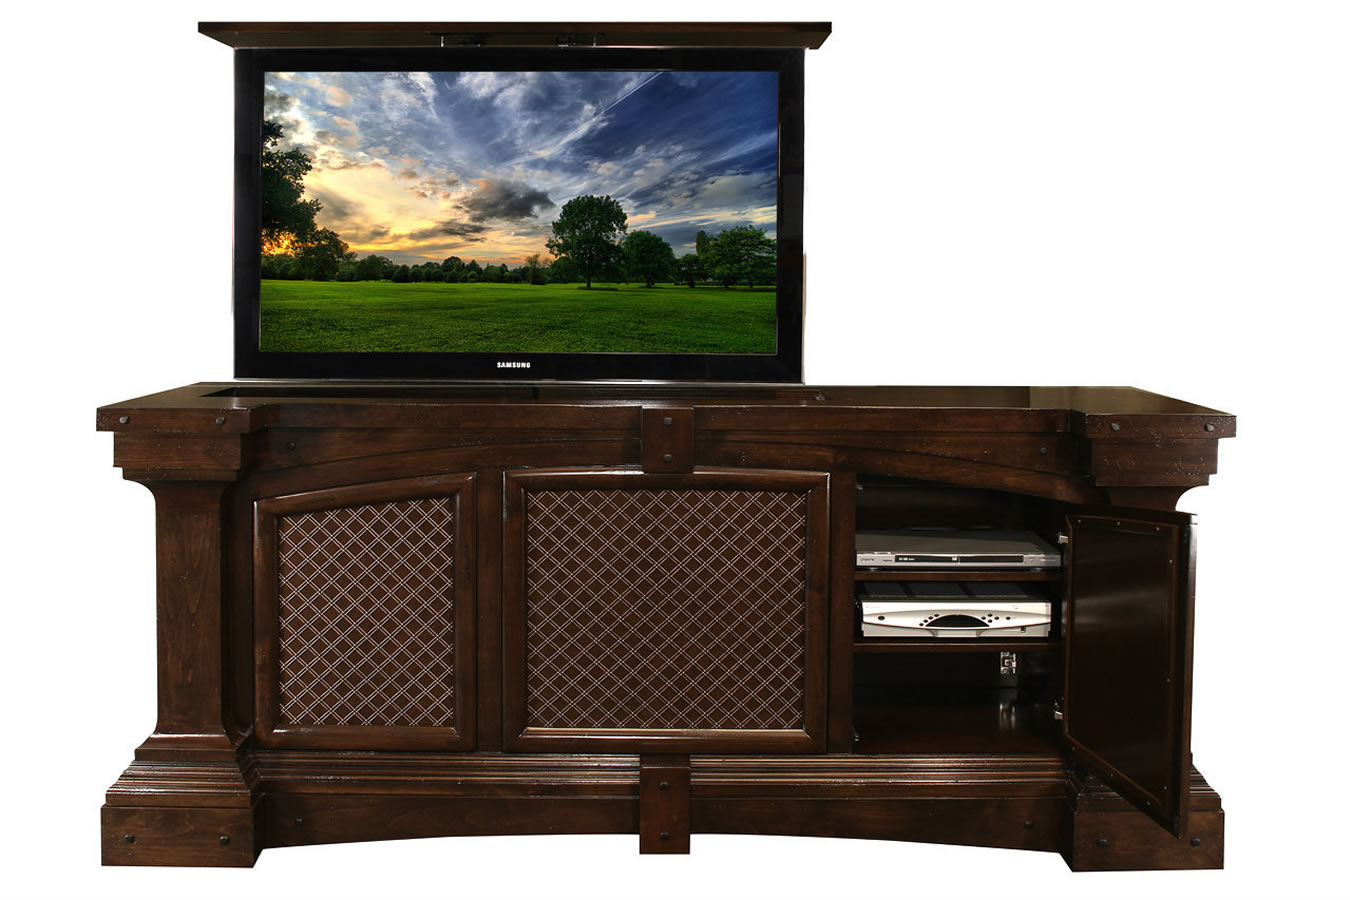 Us Made Tv Lifts Fairbanks Motorized Tv Lift Cabinet